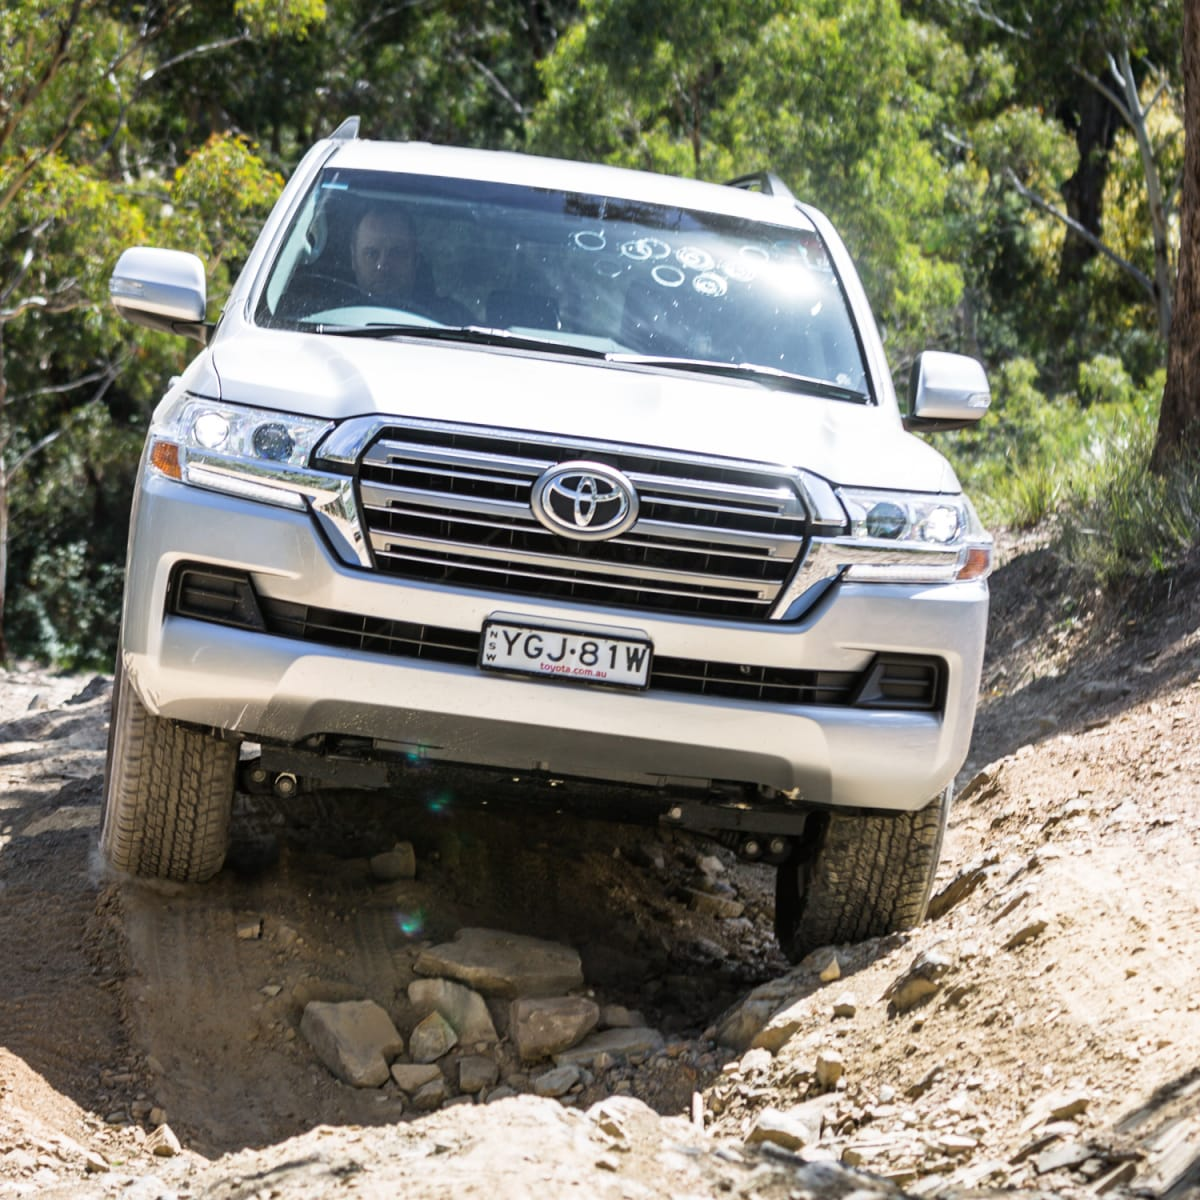 2017 Toyota LandCruiser 200 GXL review | CarAdvice